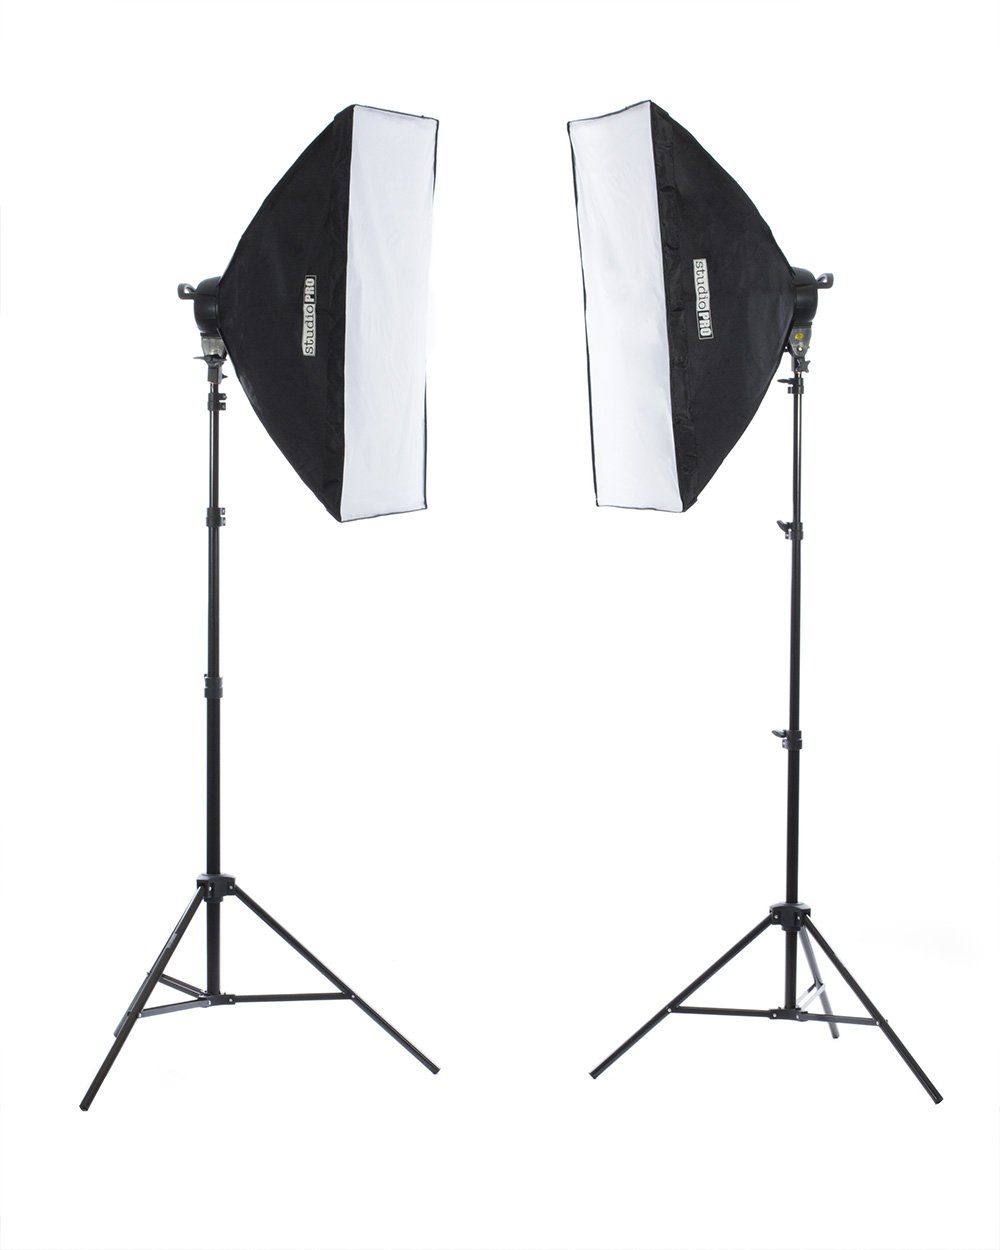 Fovitec - 2-Light 3200W Fluorescent Lighting Kit for Photo & Video with 24''x36'' Softboxes, stands, & Carry Bag by Fovitec